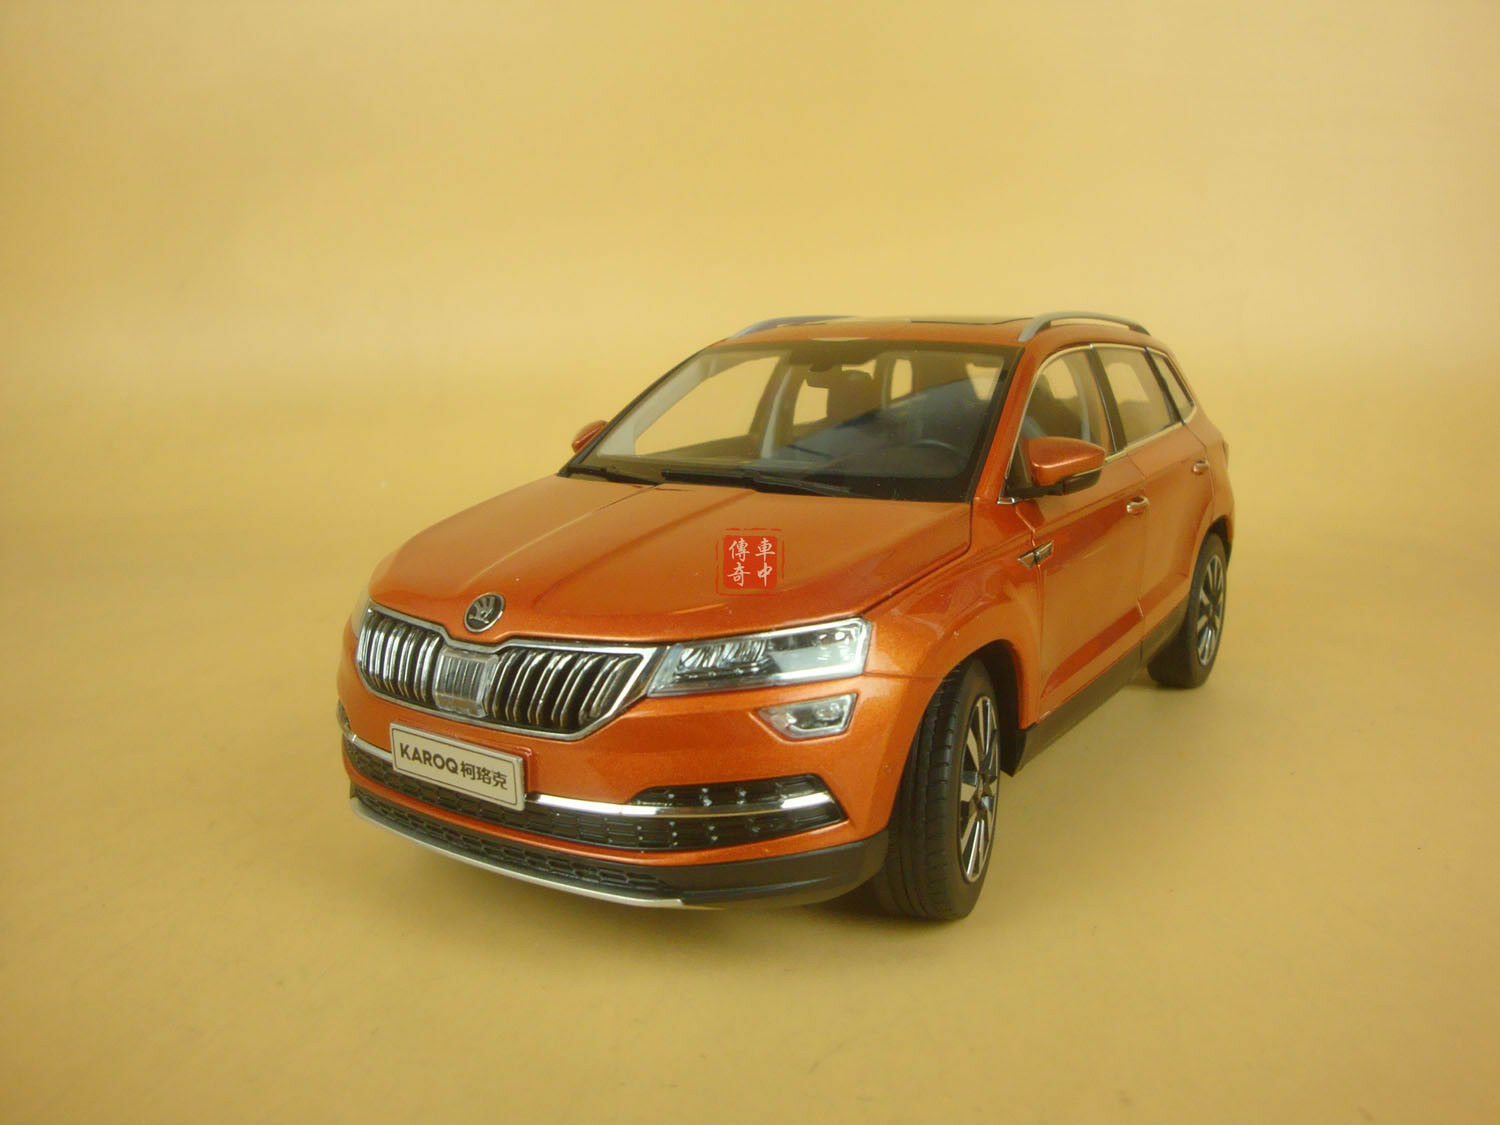 1/18 skoda karoq diecast model orange color